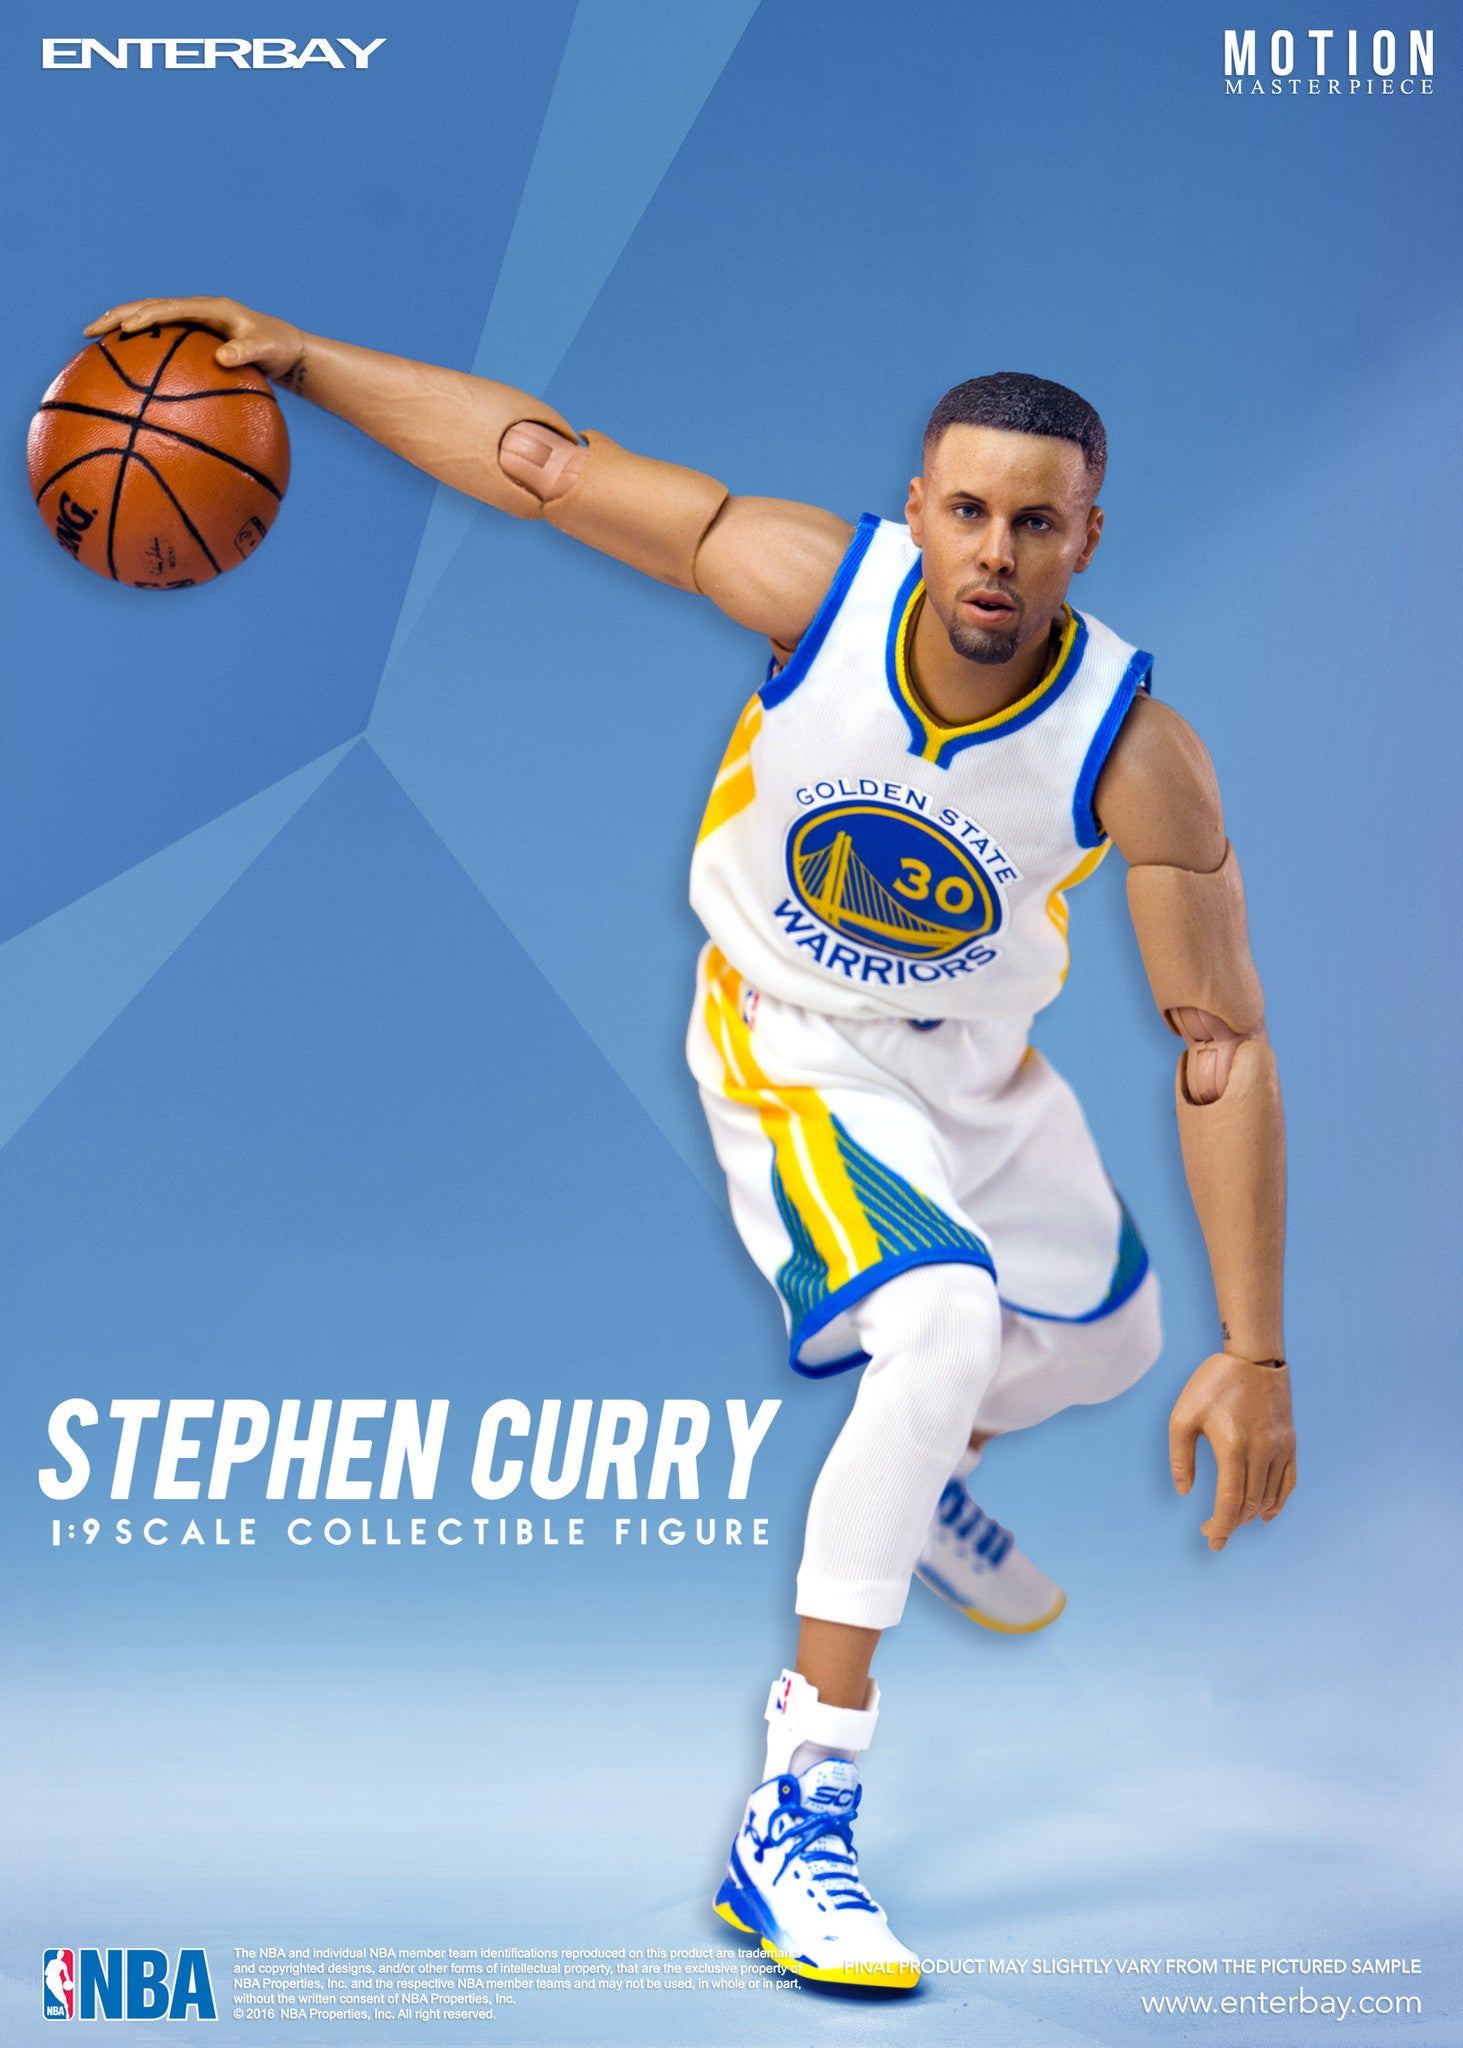 low priced 9c019 7a10c NBA Collection – Stephen Curry 1/9 scale figurine - ENTERBAY USA